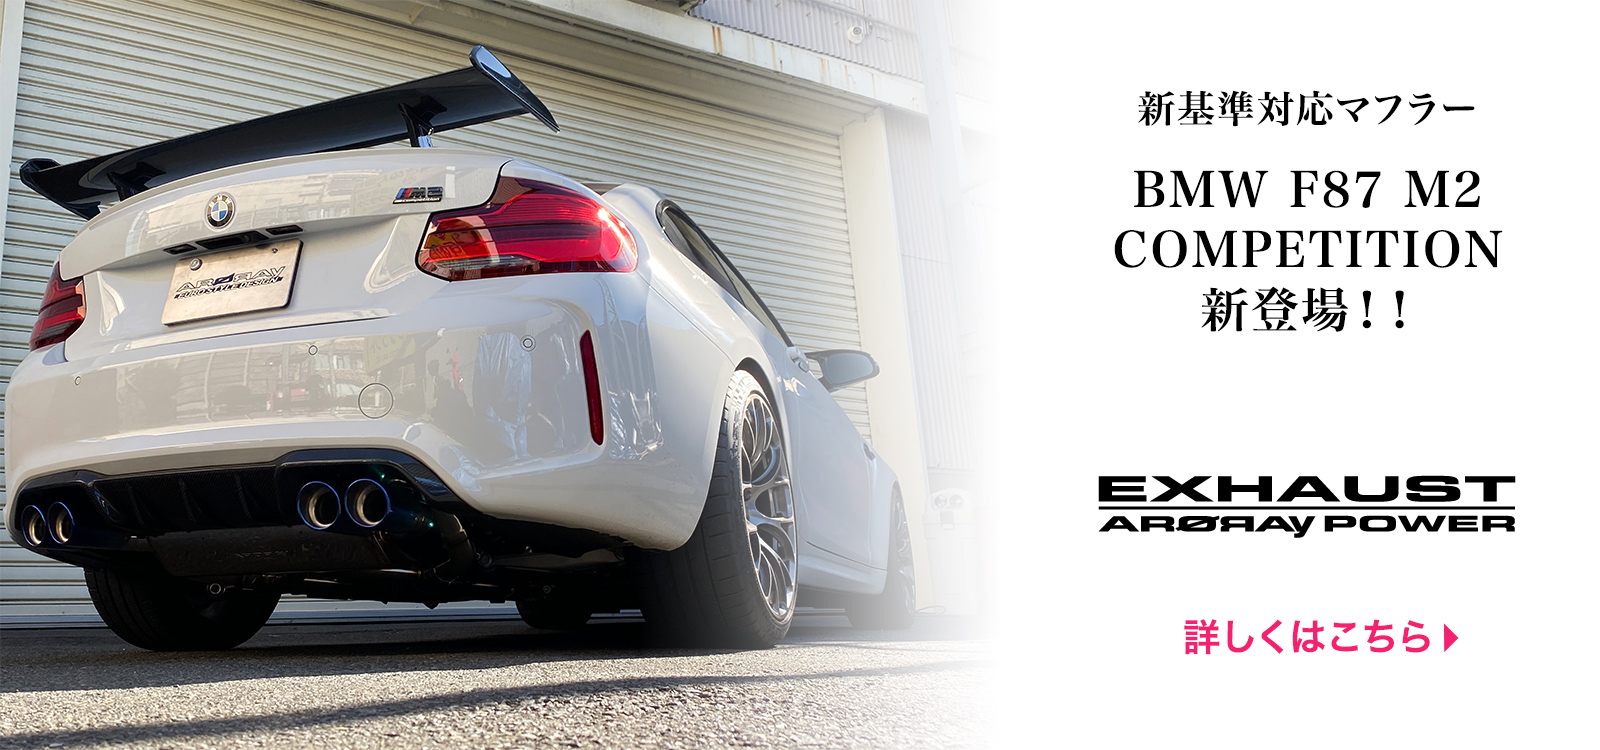 BMW F87 M2 COMPETITION 新登場!!